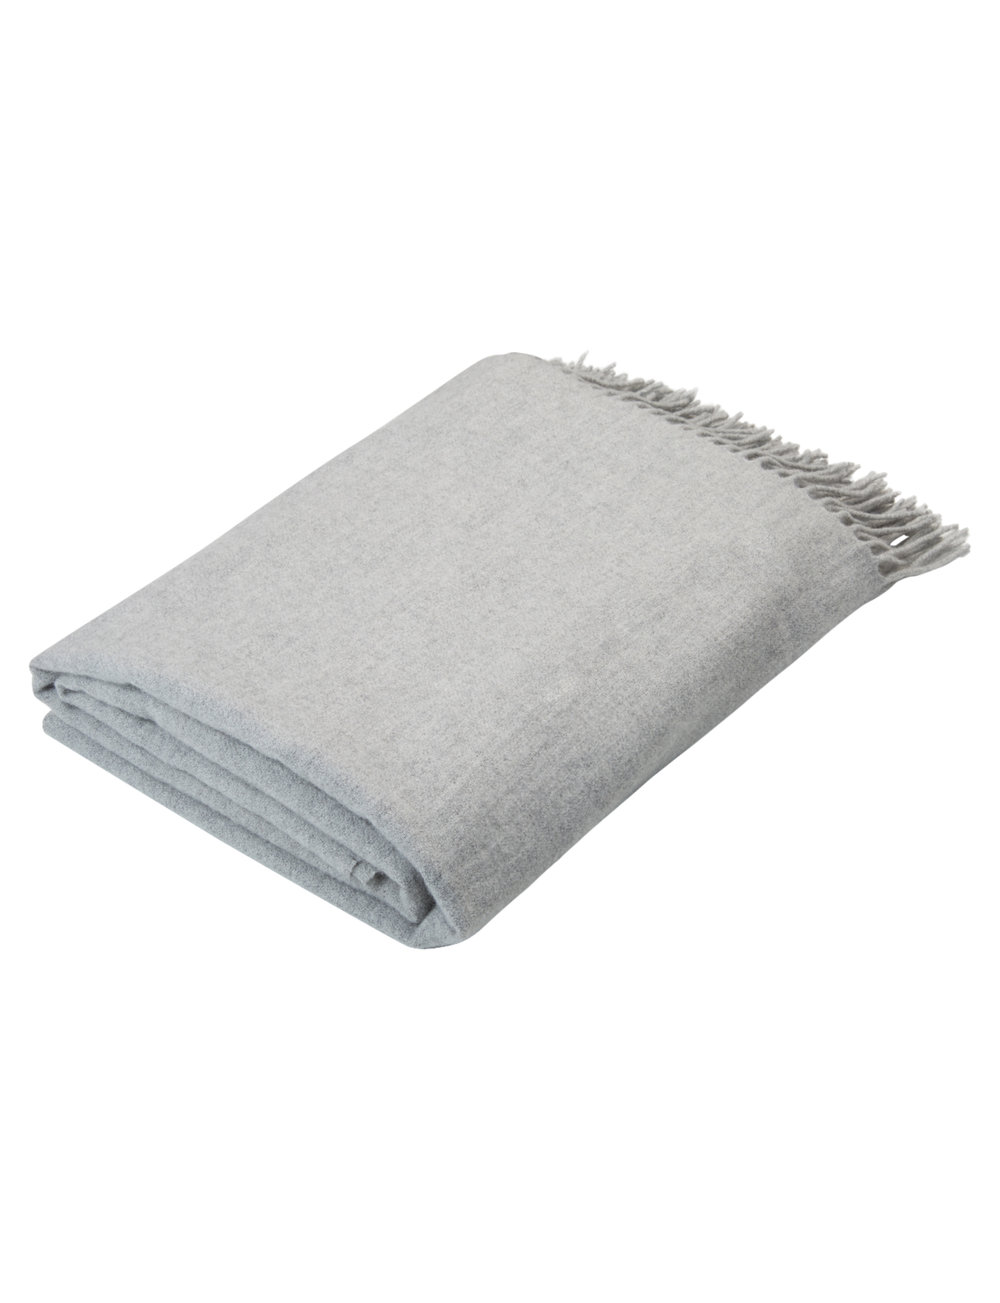 Domani Cashmere Throw Grey Marle.jpg